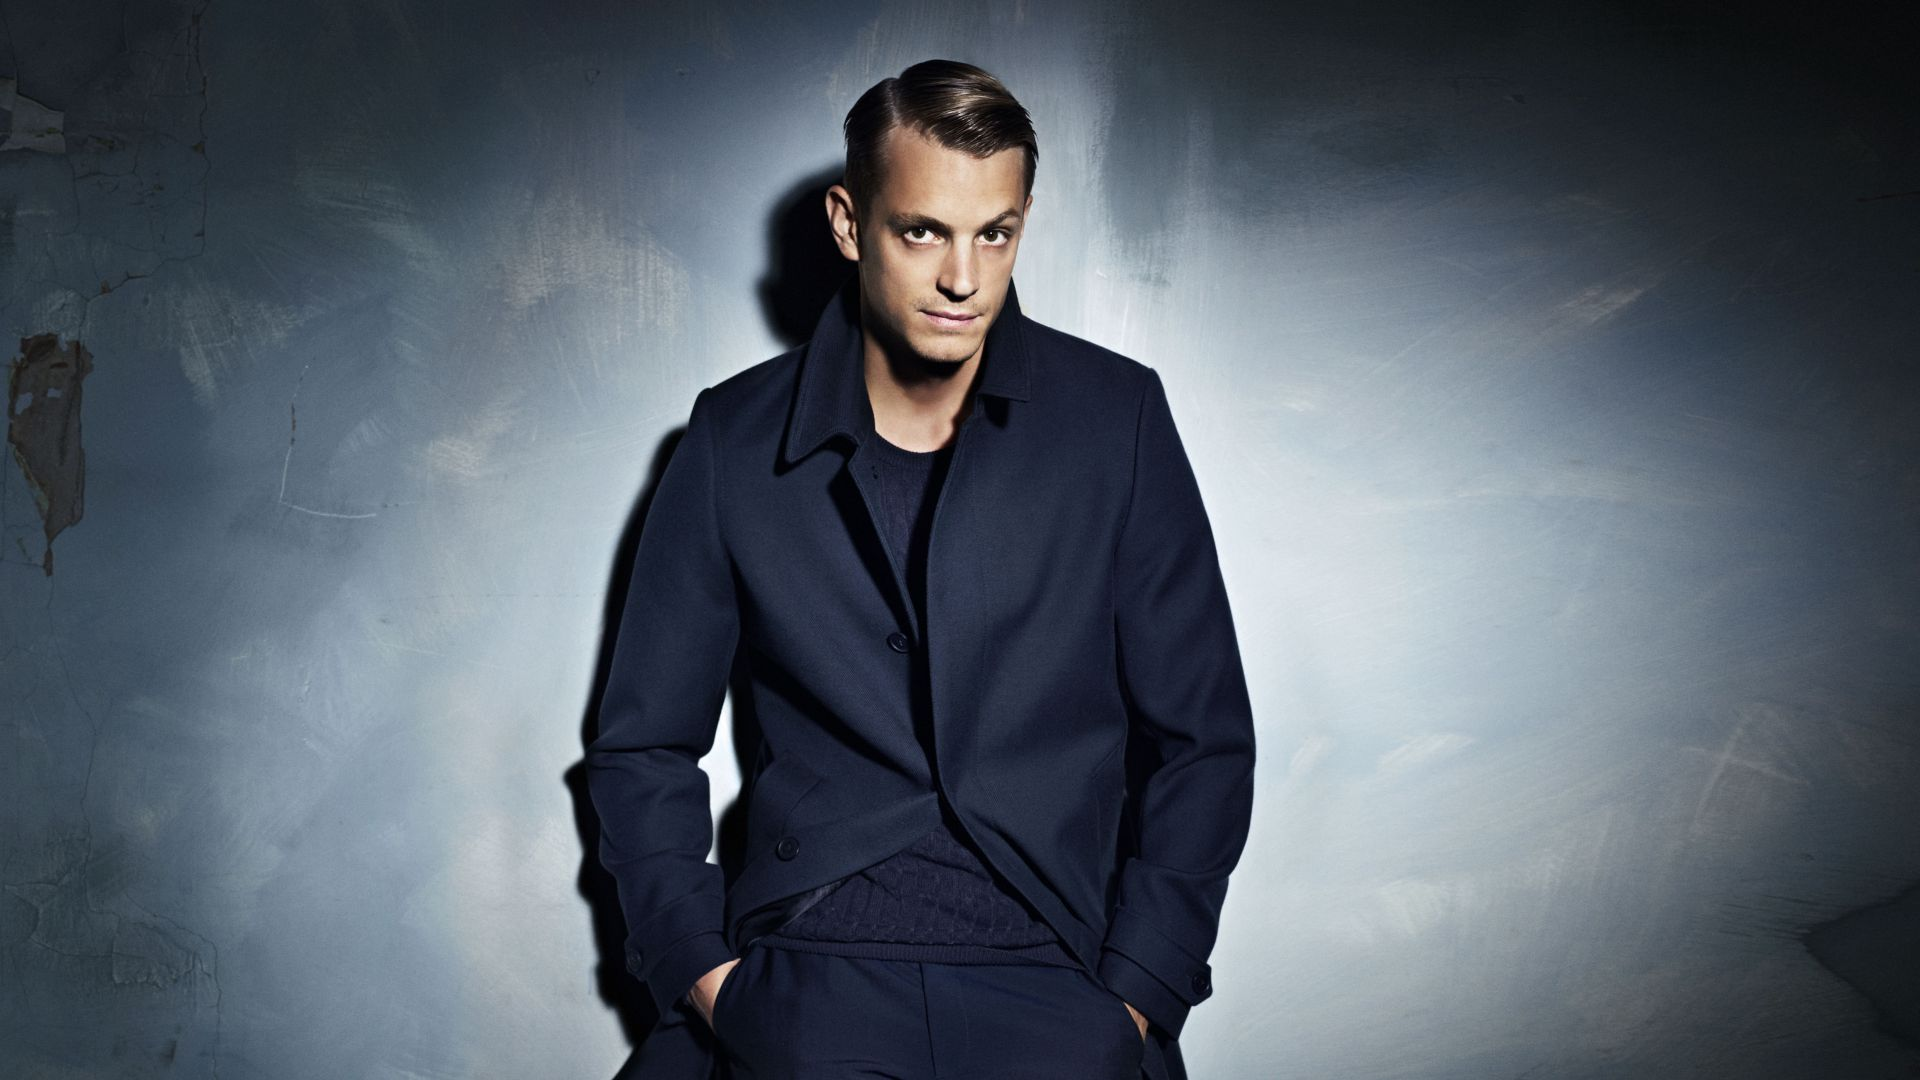 Joel Kinnaman, Most Popular Celebs, actor (horizontal)